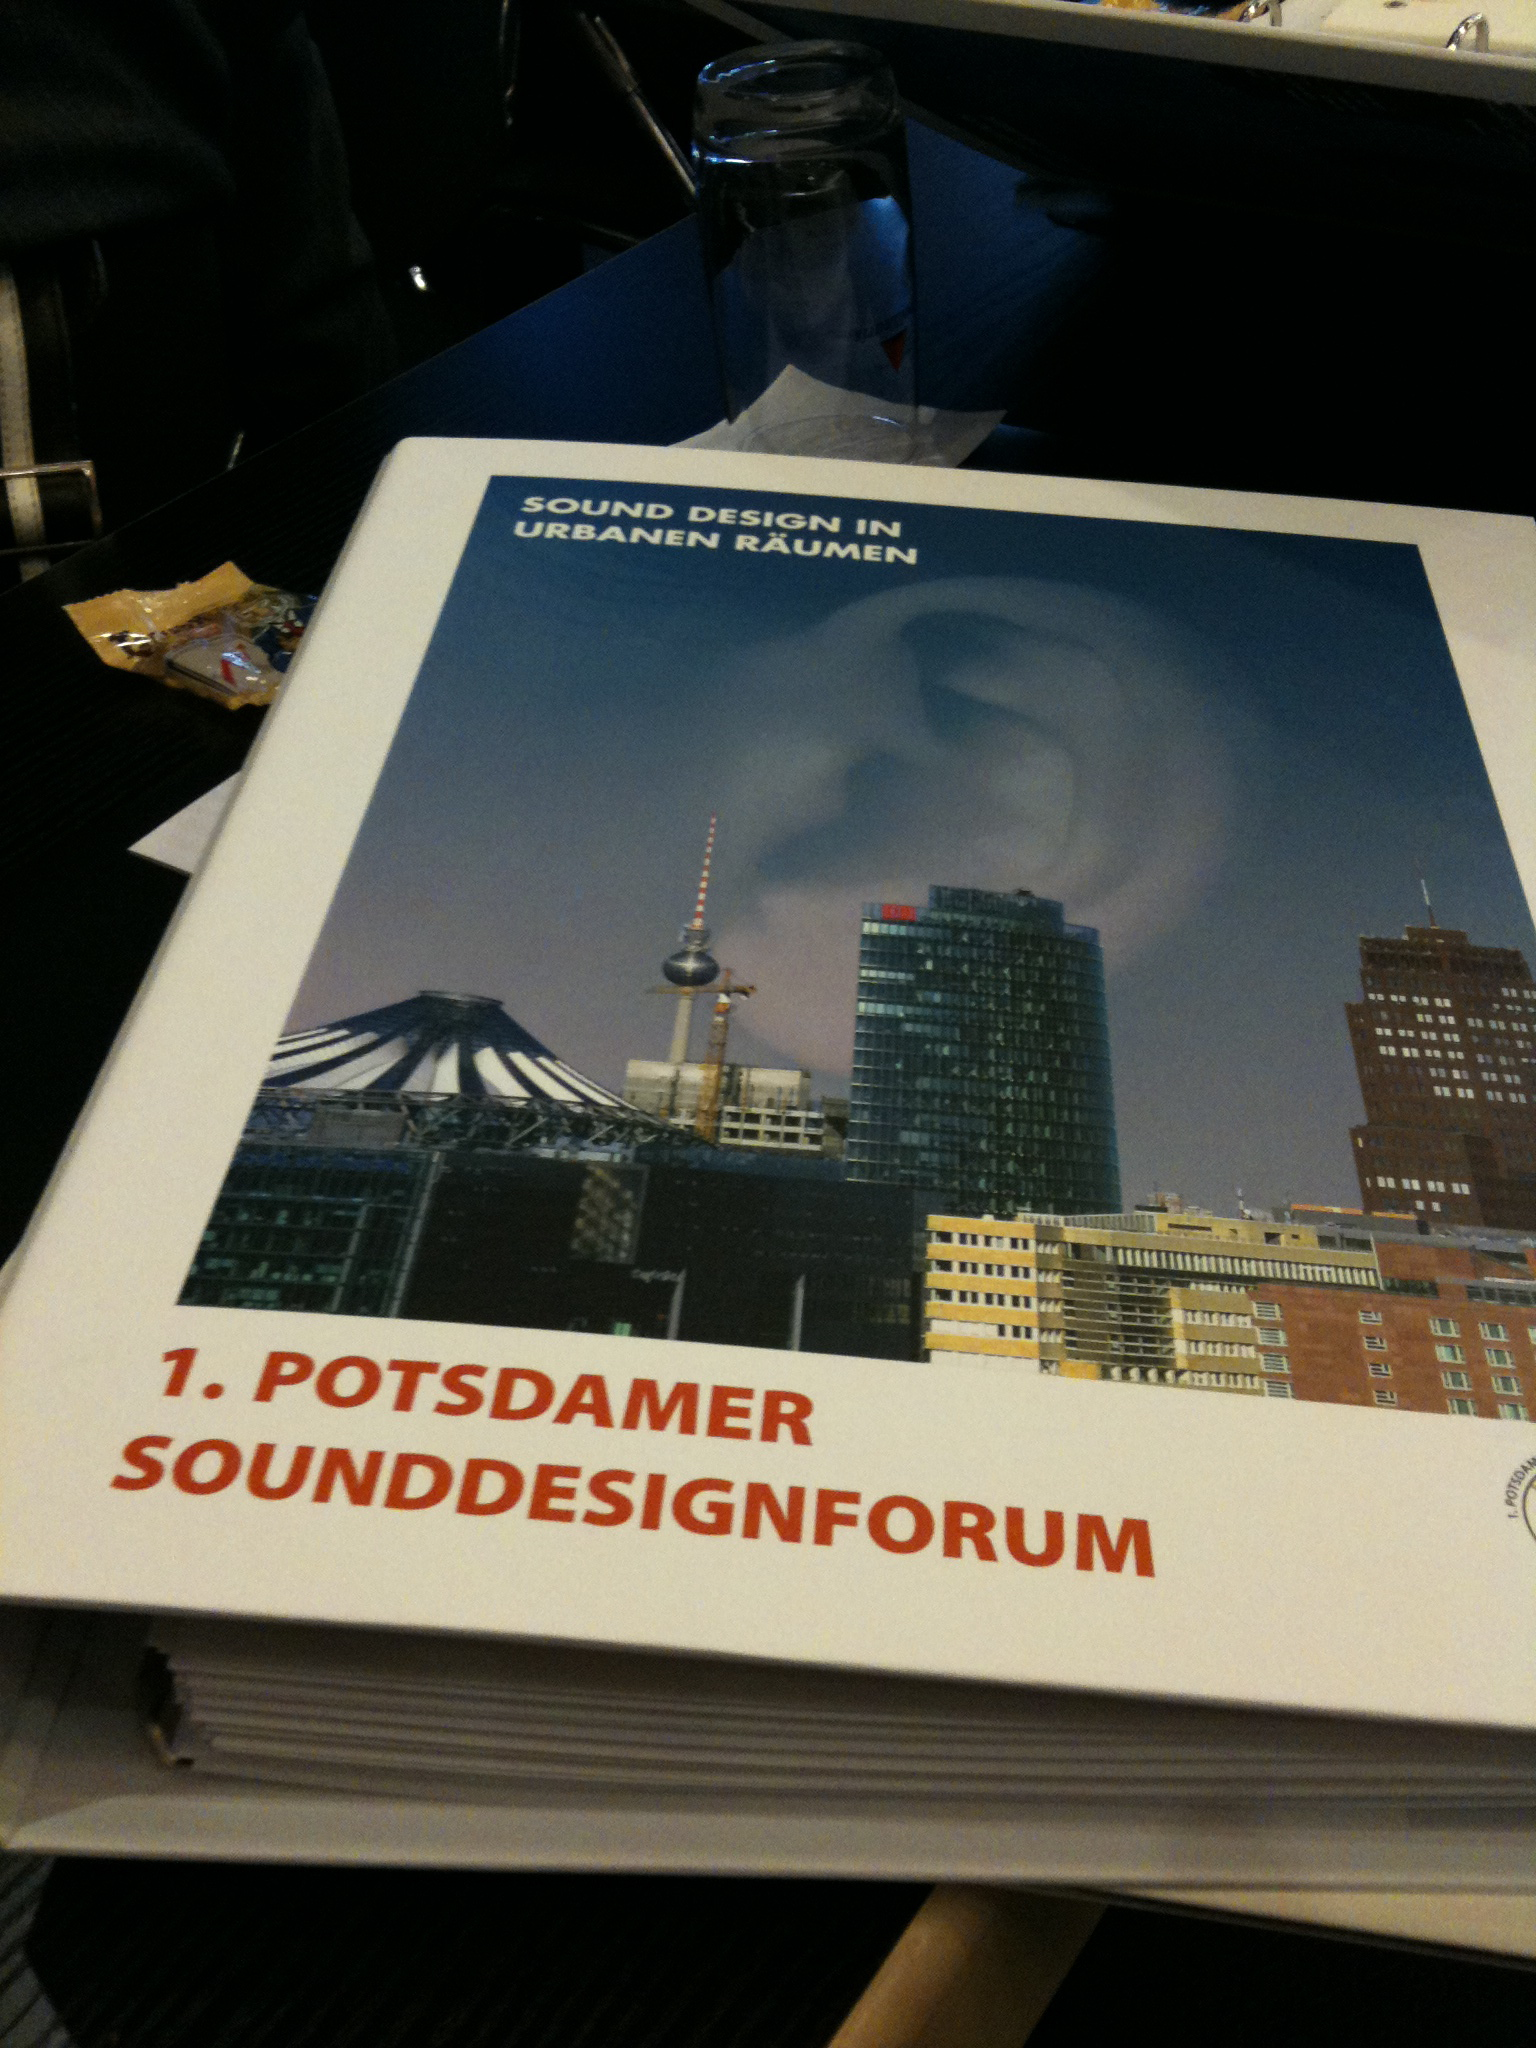 1. Sound-Design-Forum in Potsdam